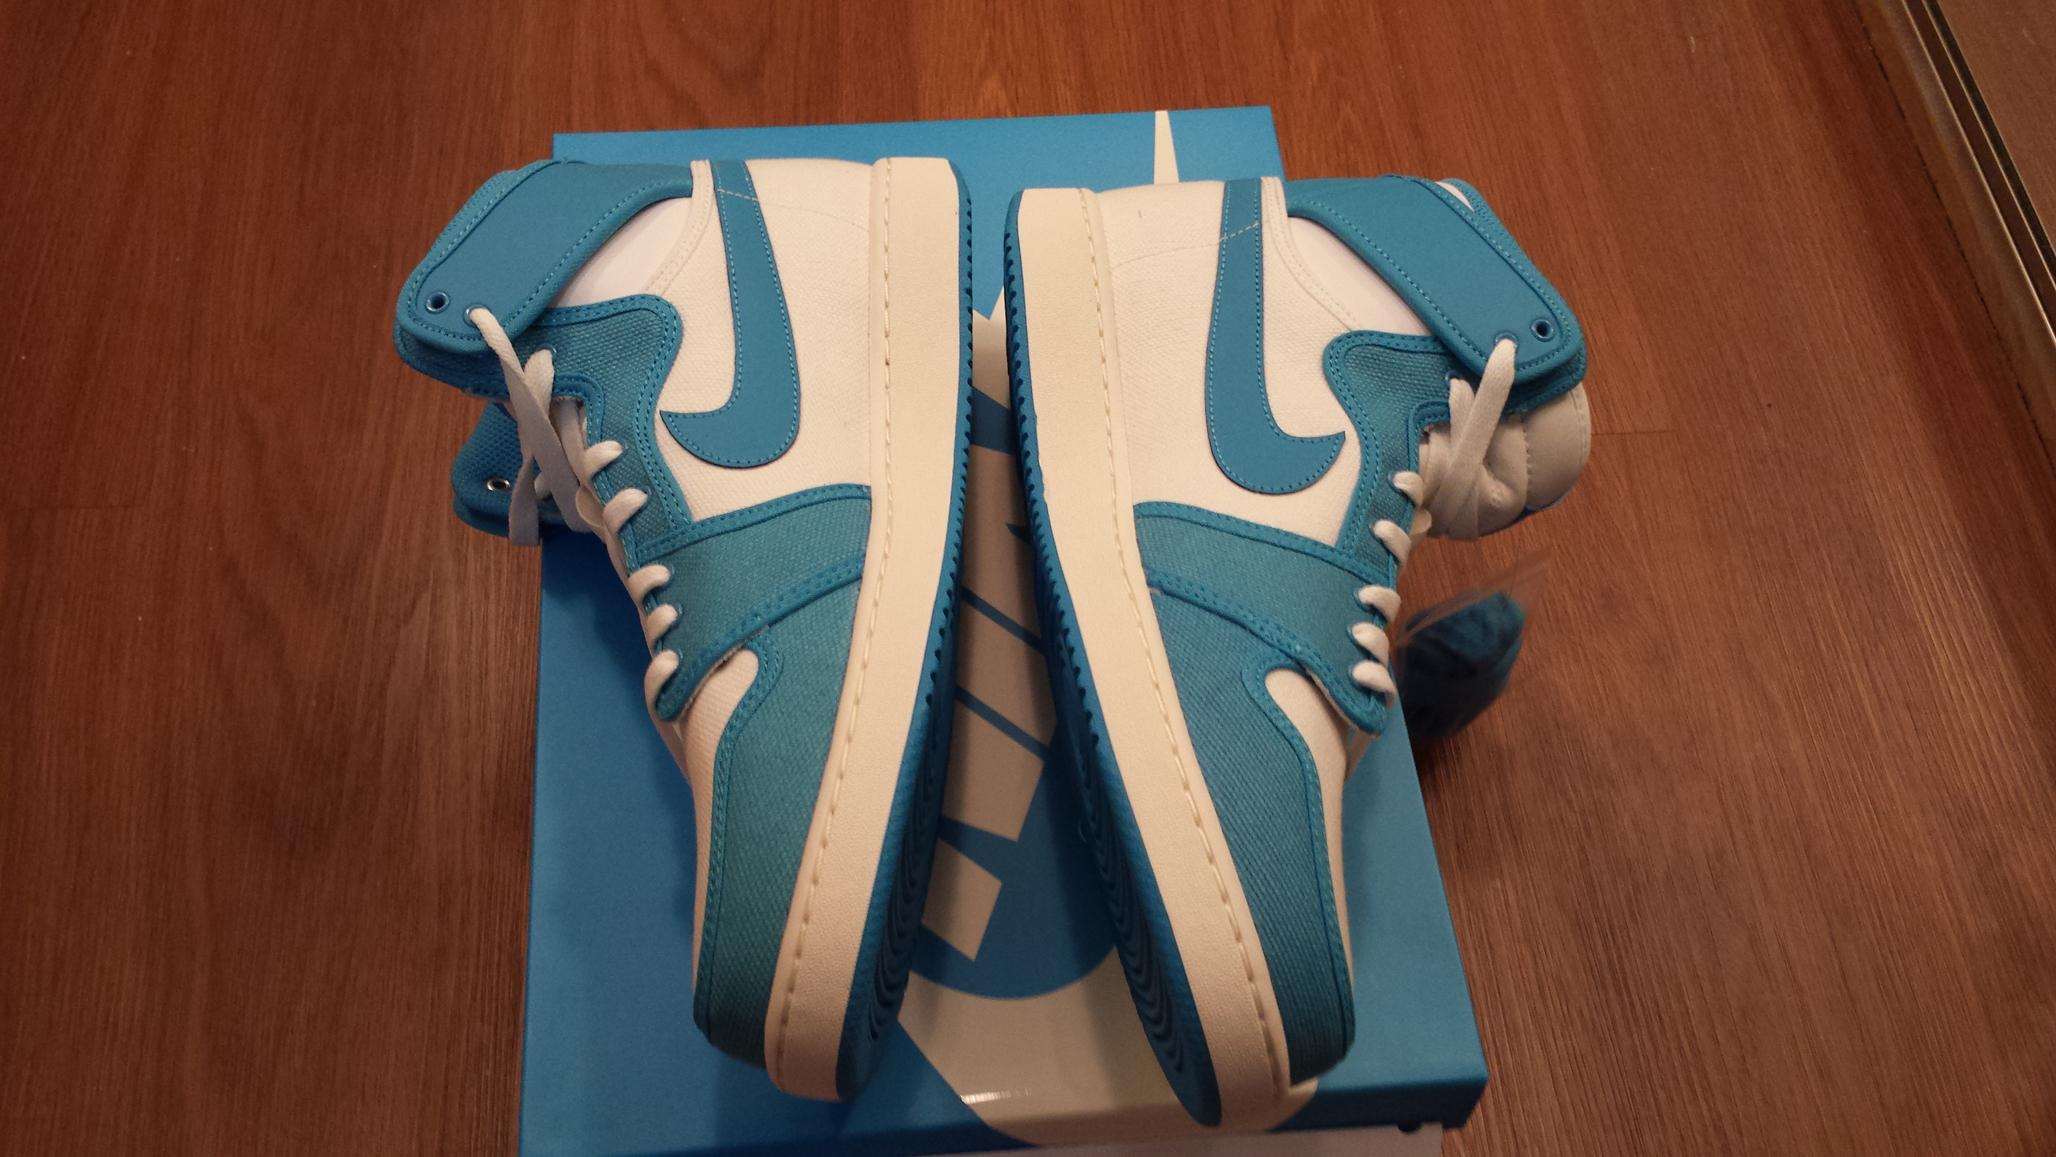 Nike Air Jordan 1 AJKO UNC (from Rivalry Pack size 11) · Vision ... 5c9ff3e74358